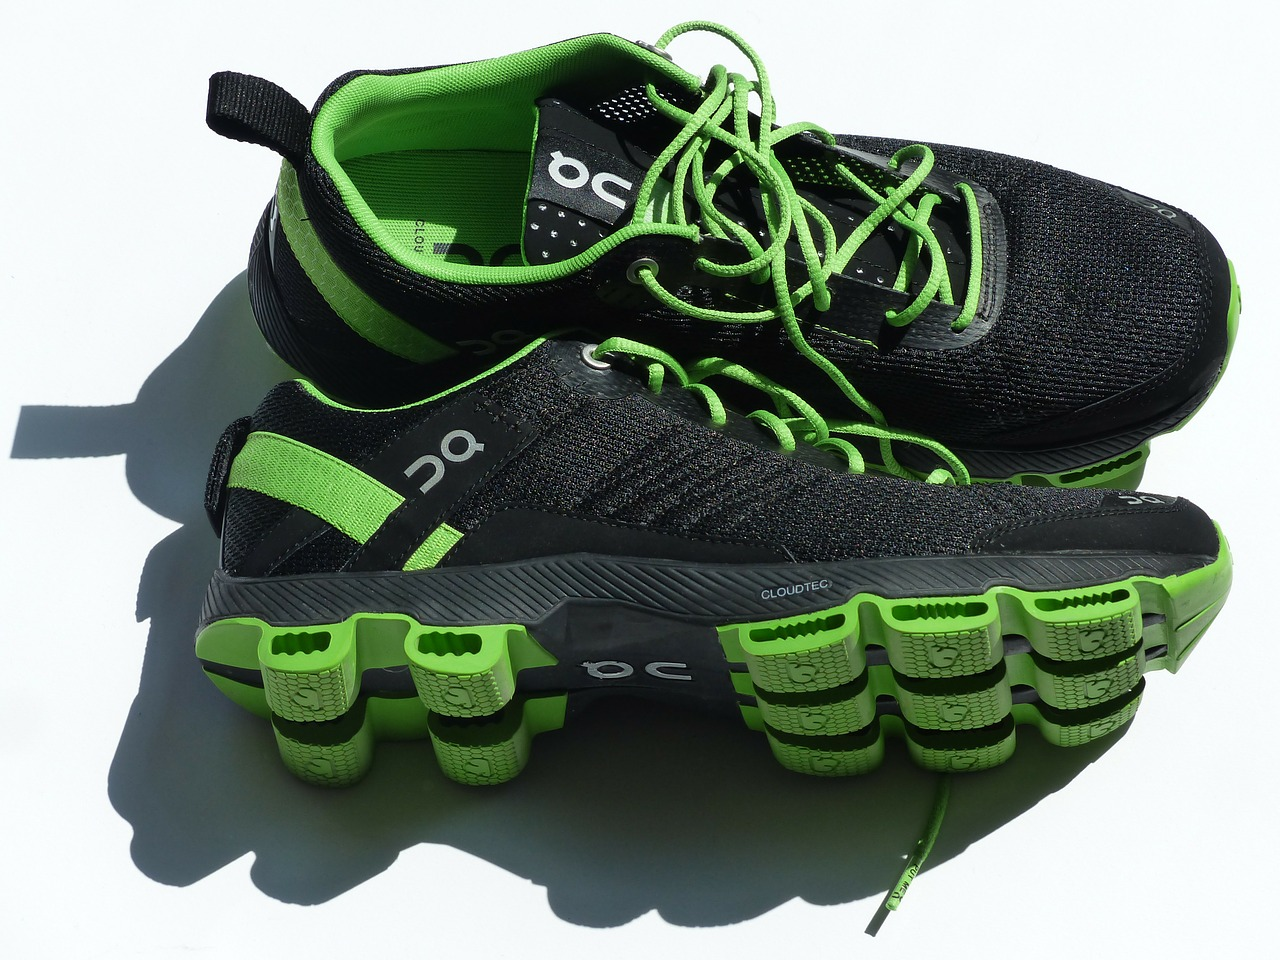 a pair of green and black running sneakers